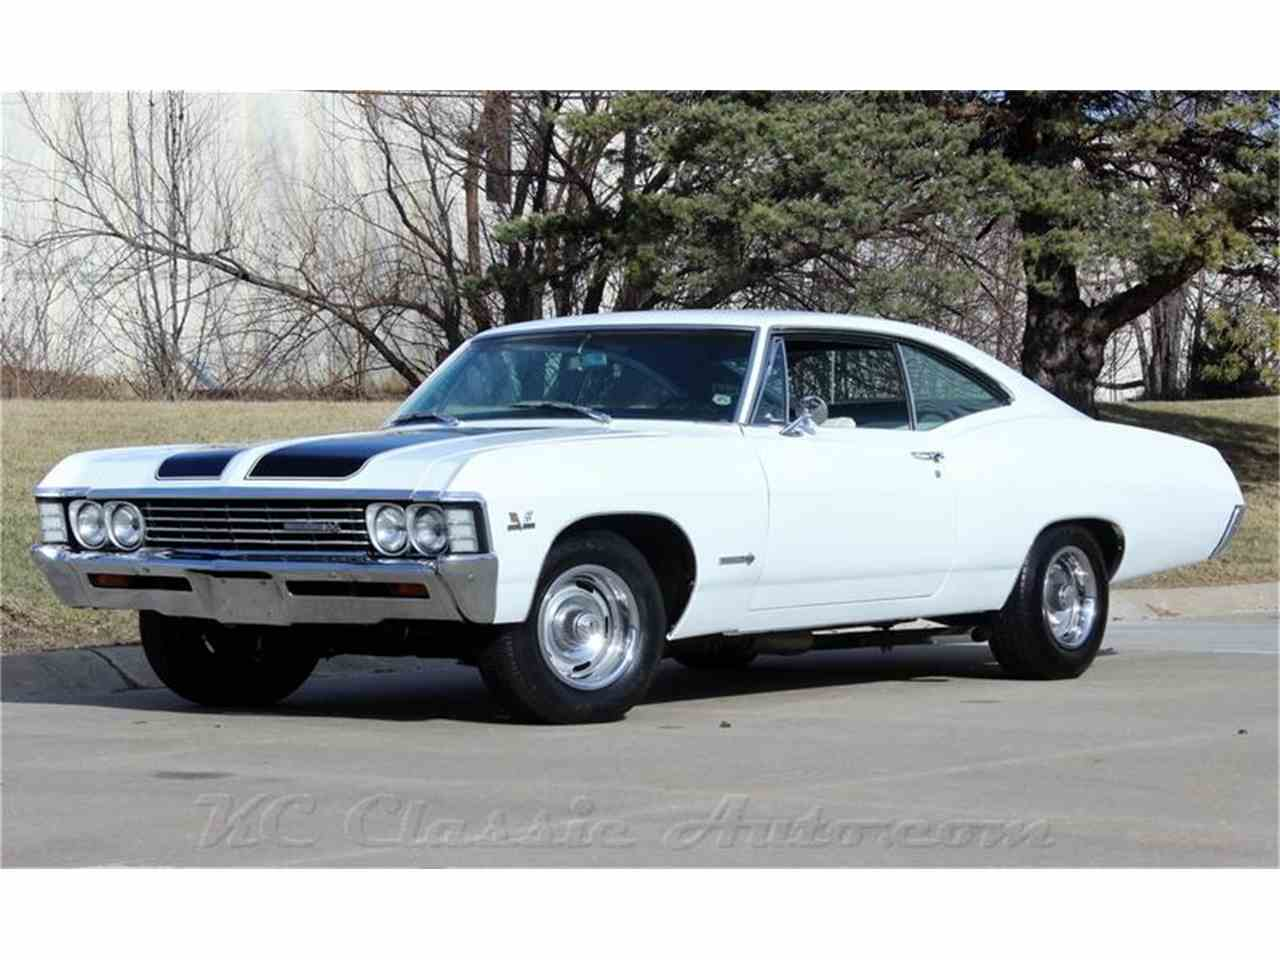 1967 chevrolet impala ss numbers matching big block 4spd for sale cc 953541. Black Bedroom Furniture Sets. Home Design Ideas